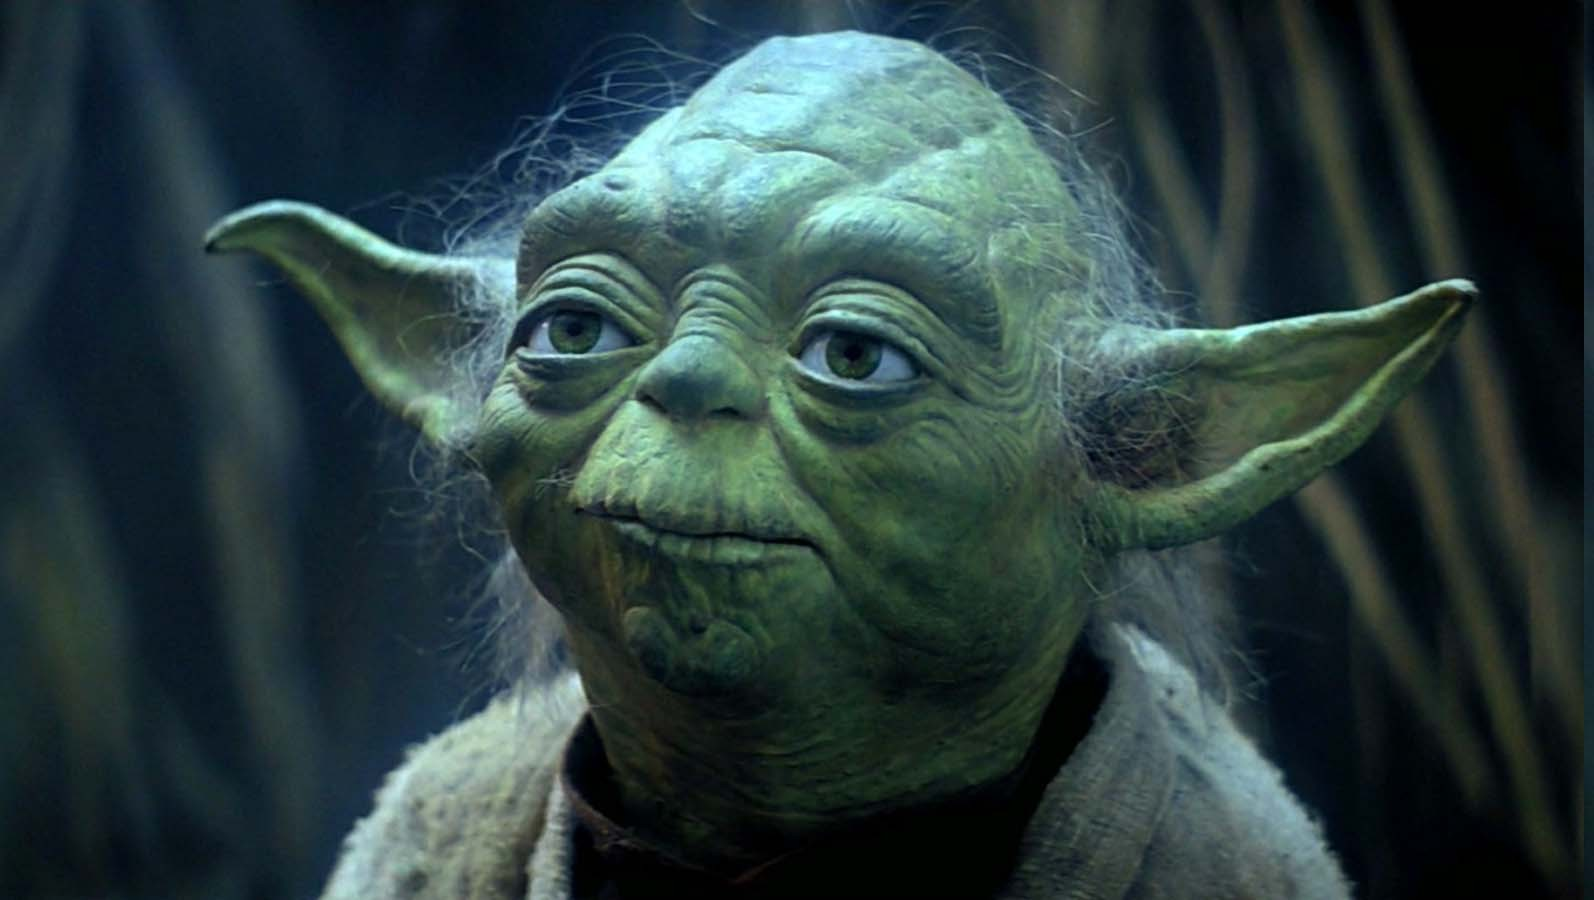 Star Wars Yoda Wallpapers Hd Desktop And Mobile Backgrounds